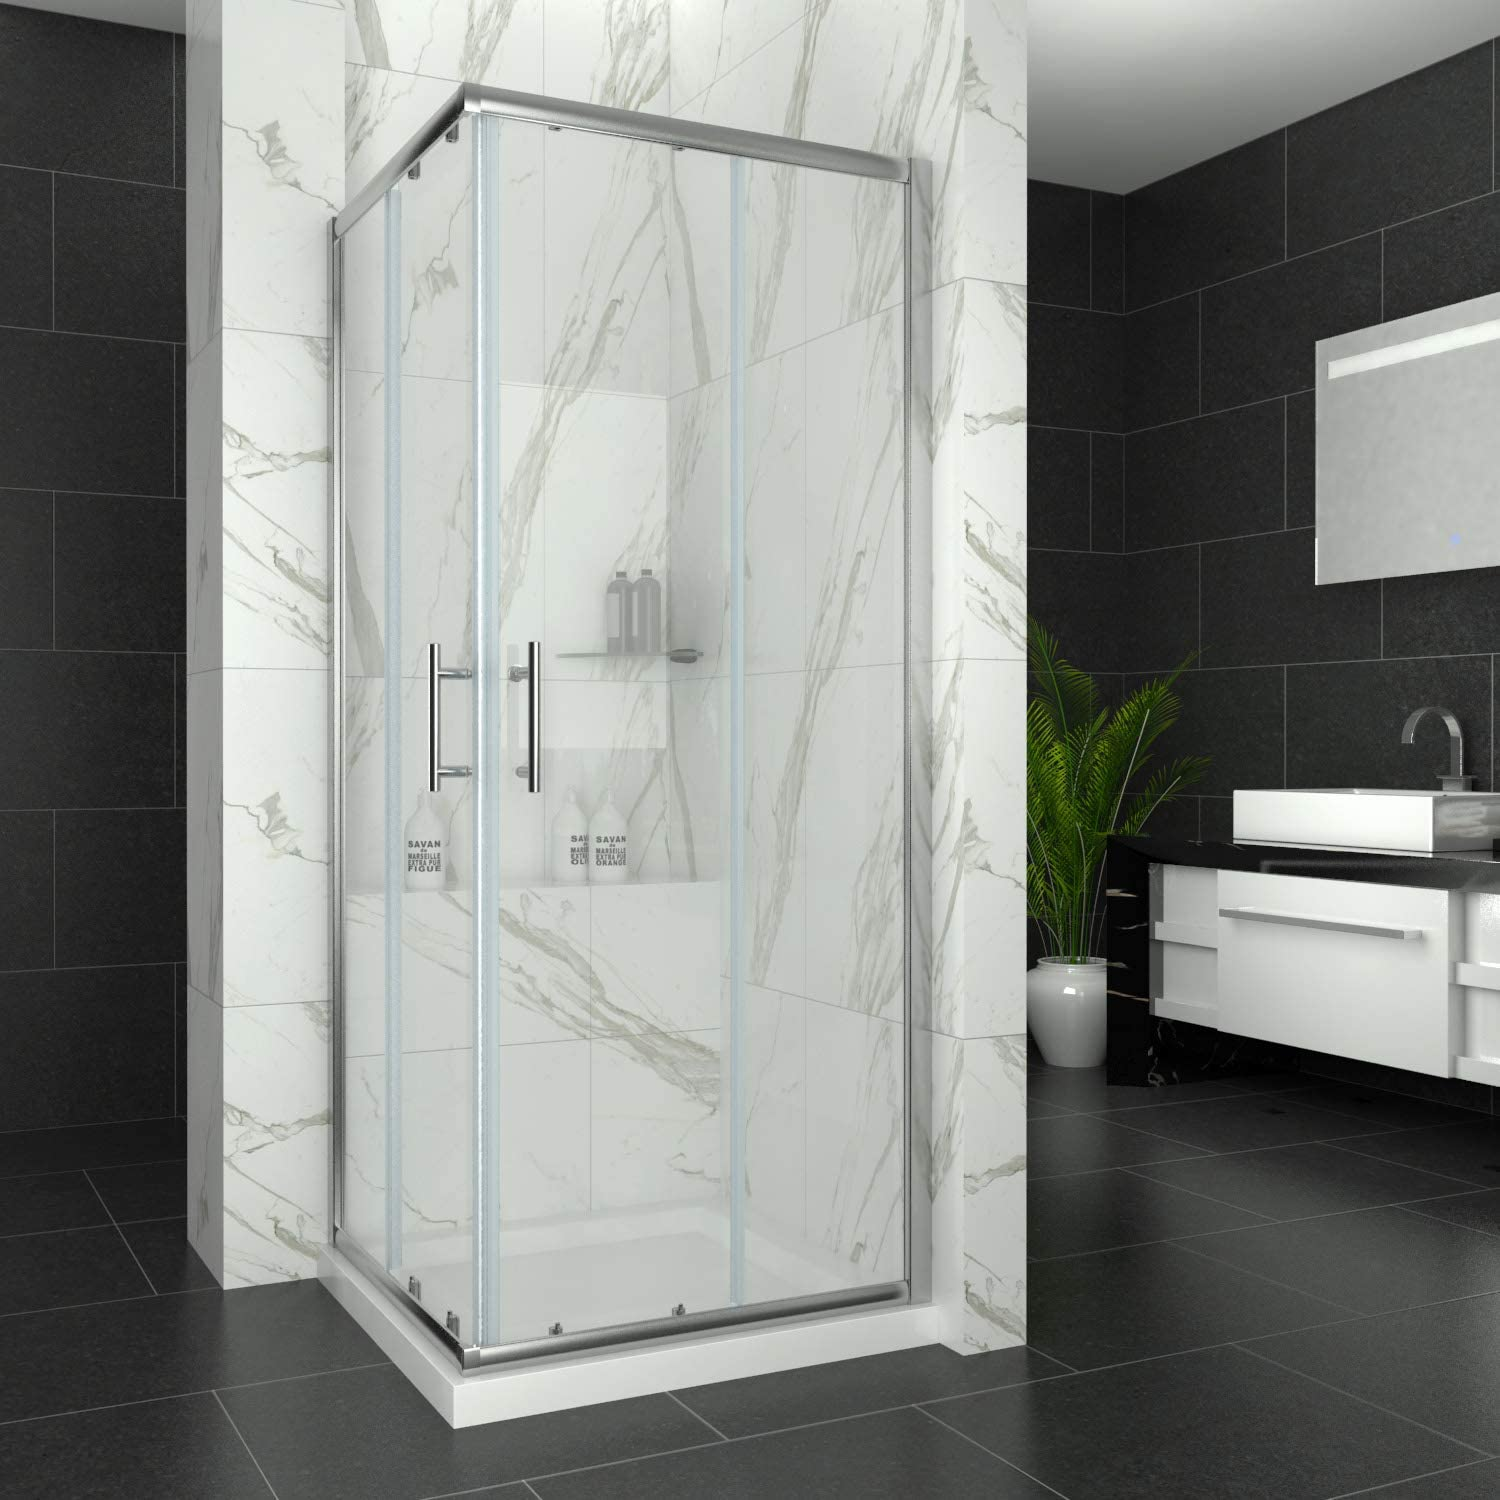 900 x 900 mm Sliding Square Corner Entry Shower Enclosure 6mm Extra Toughened Safety Glass liding Shower Cubicle Door